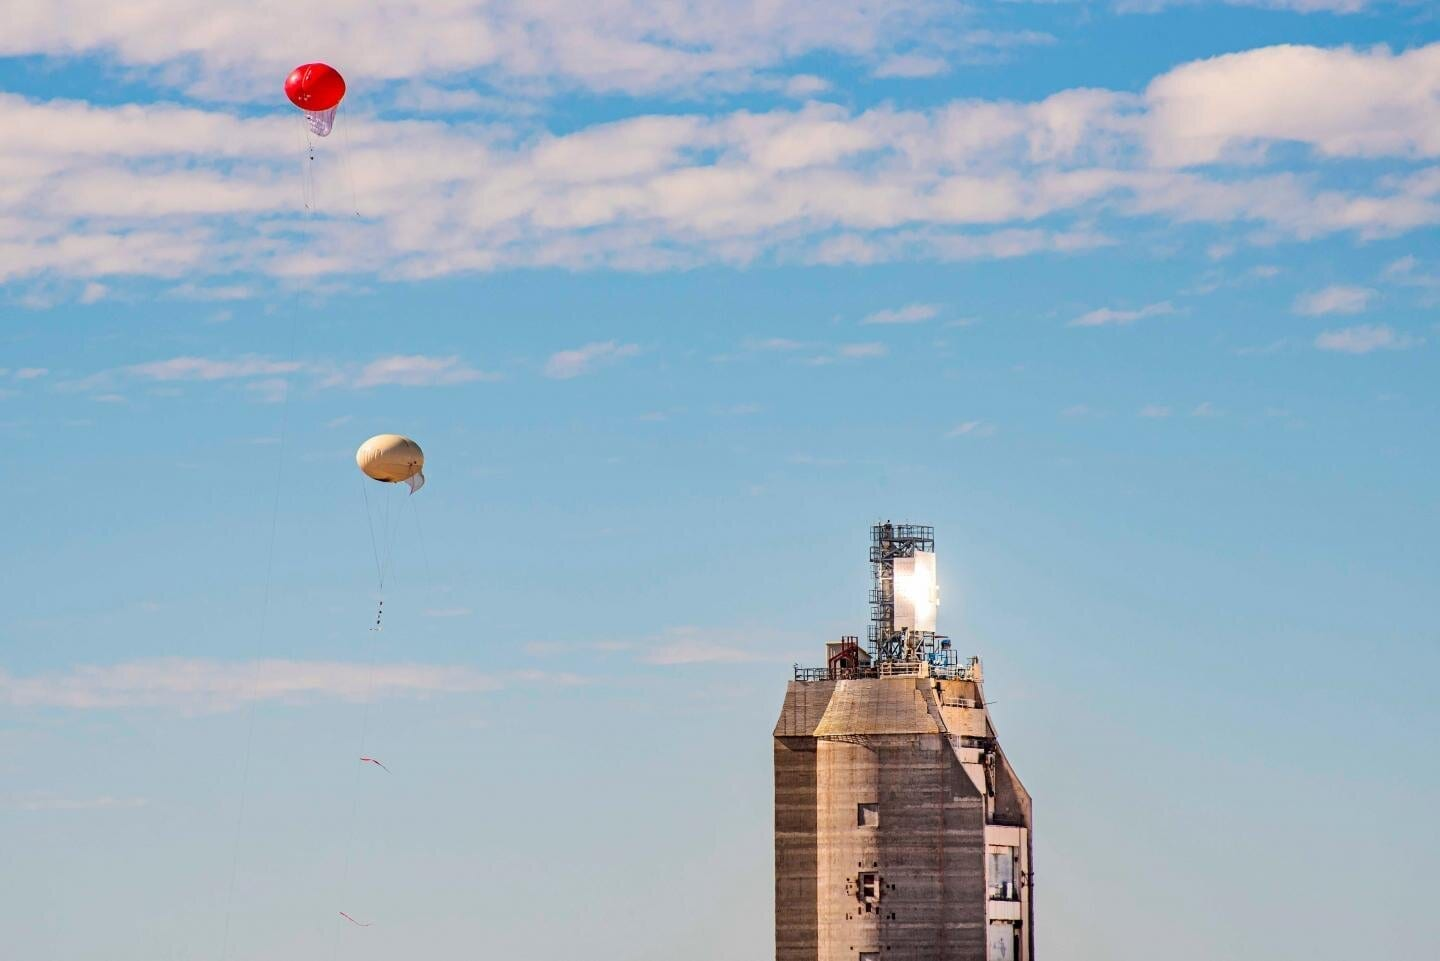 SPOTLIT BY SUN POWER — A multidisciplinary team of researchers from Sandia recently used tethered balloons to collect samples of airborne dust particles to ensure the safety of a falling-particle receiver for concentrating solar power.